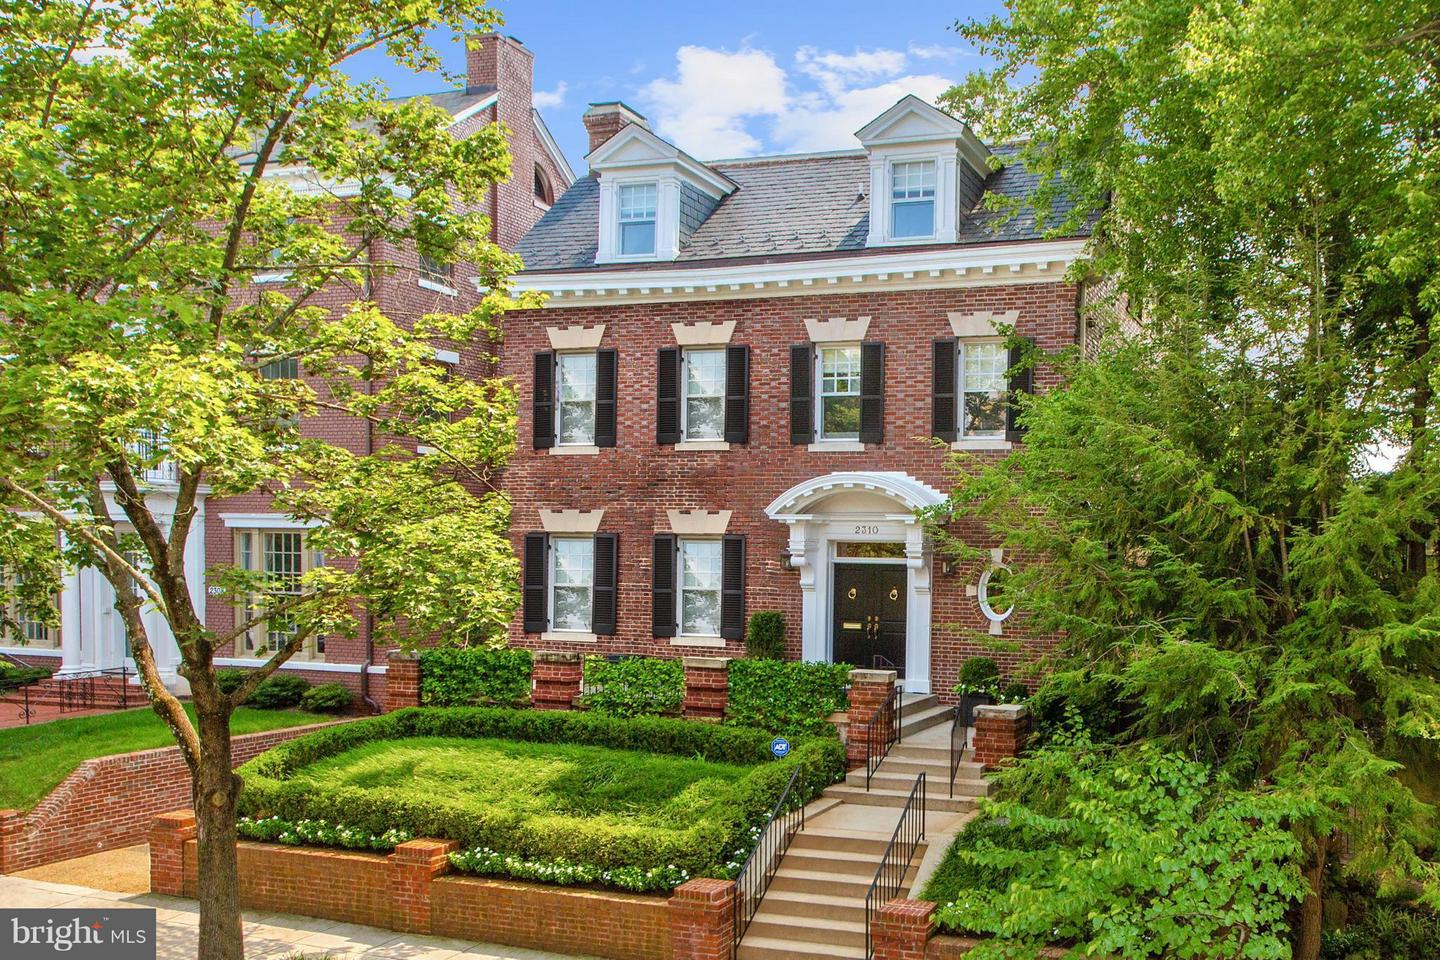 Single Family Home for Sale at 2310 Tracy Pl Nw 2310 Tracy Pl Nw Washington, District Of Columbia 20008 United States